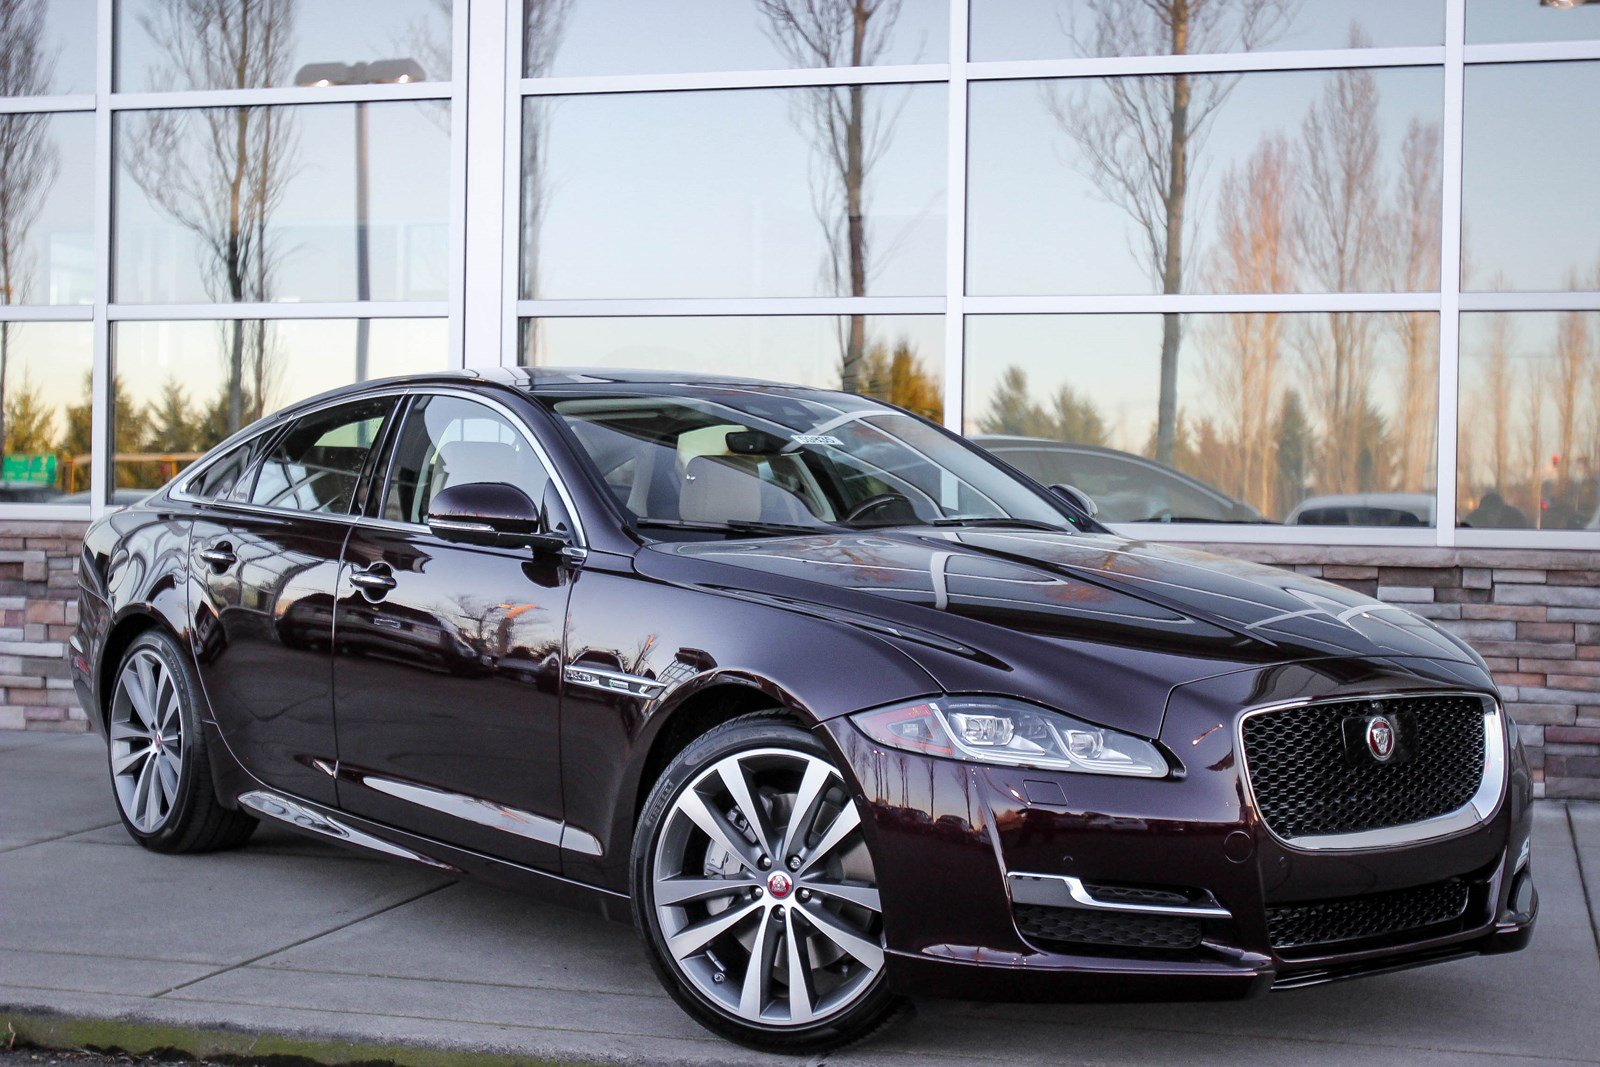 Lease Certified Pre Owned >> New 2018 Jaguar XJ XJ R-Sport 4dr Car in Bellevue #59835 | Jaguar Bellevue